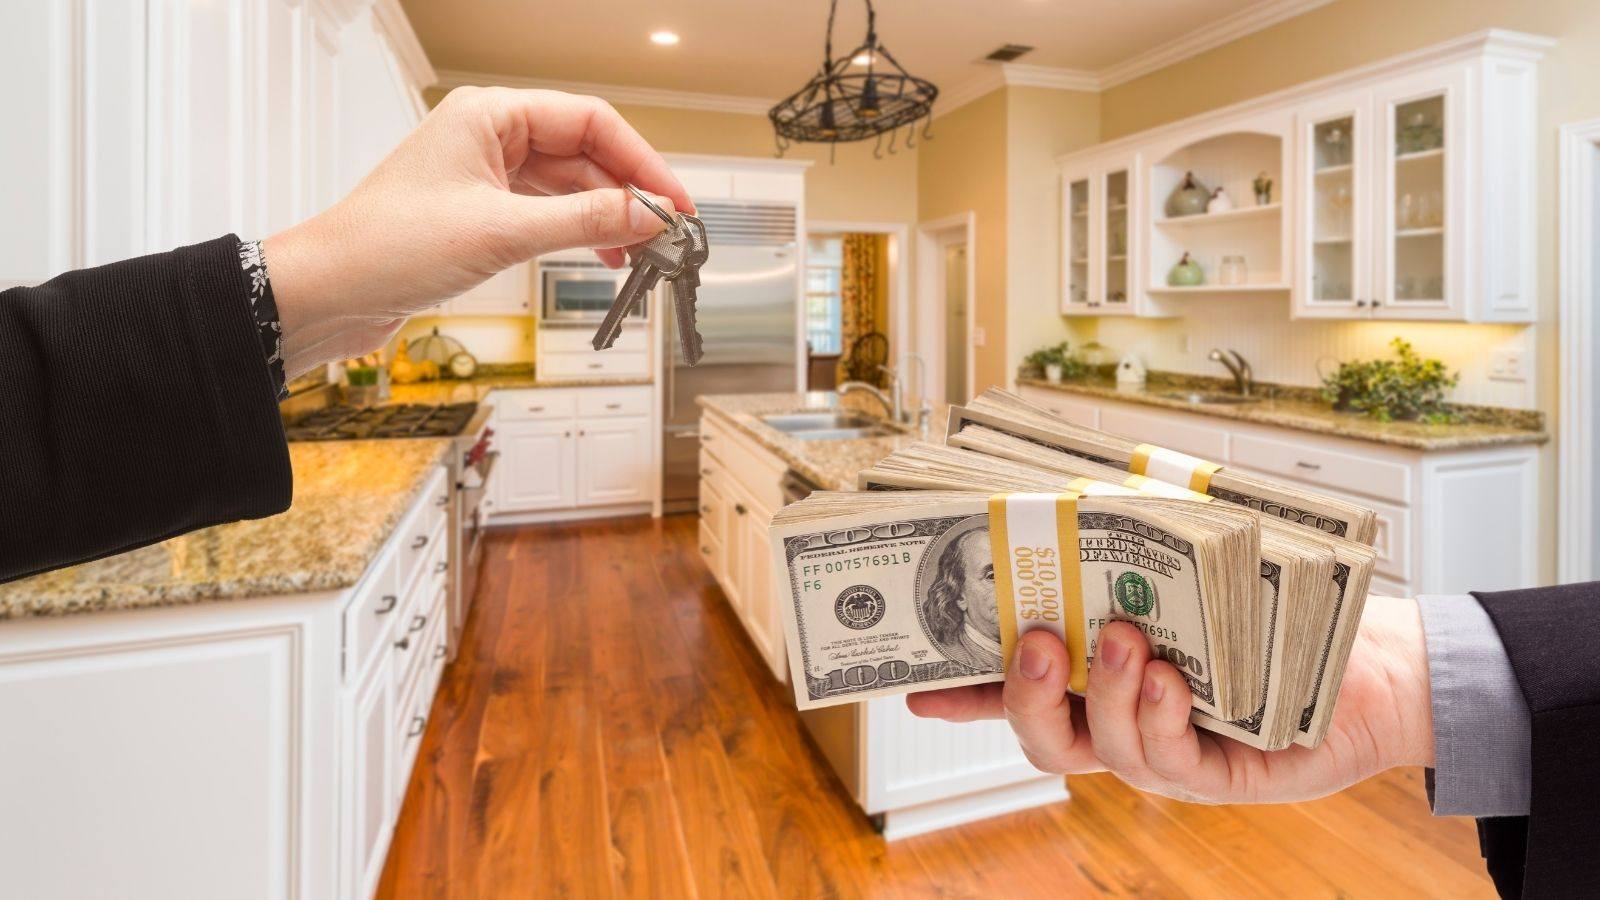 What Do You Pay When Your House Is Sold?